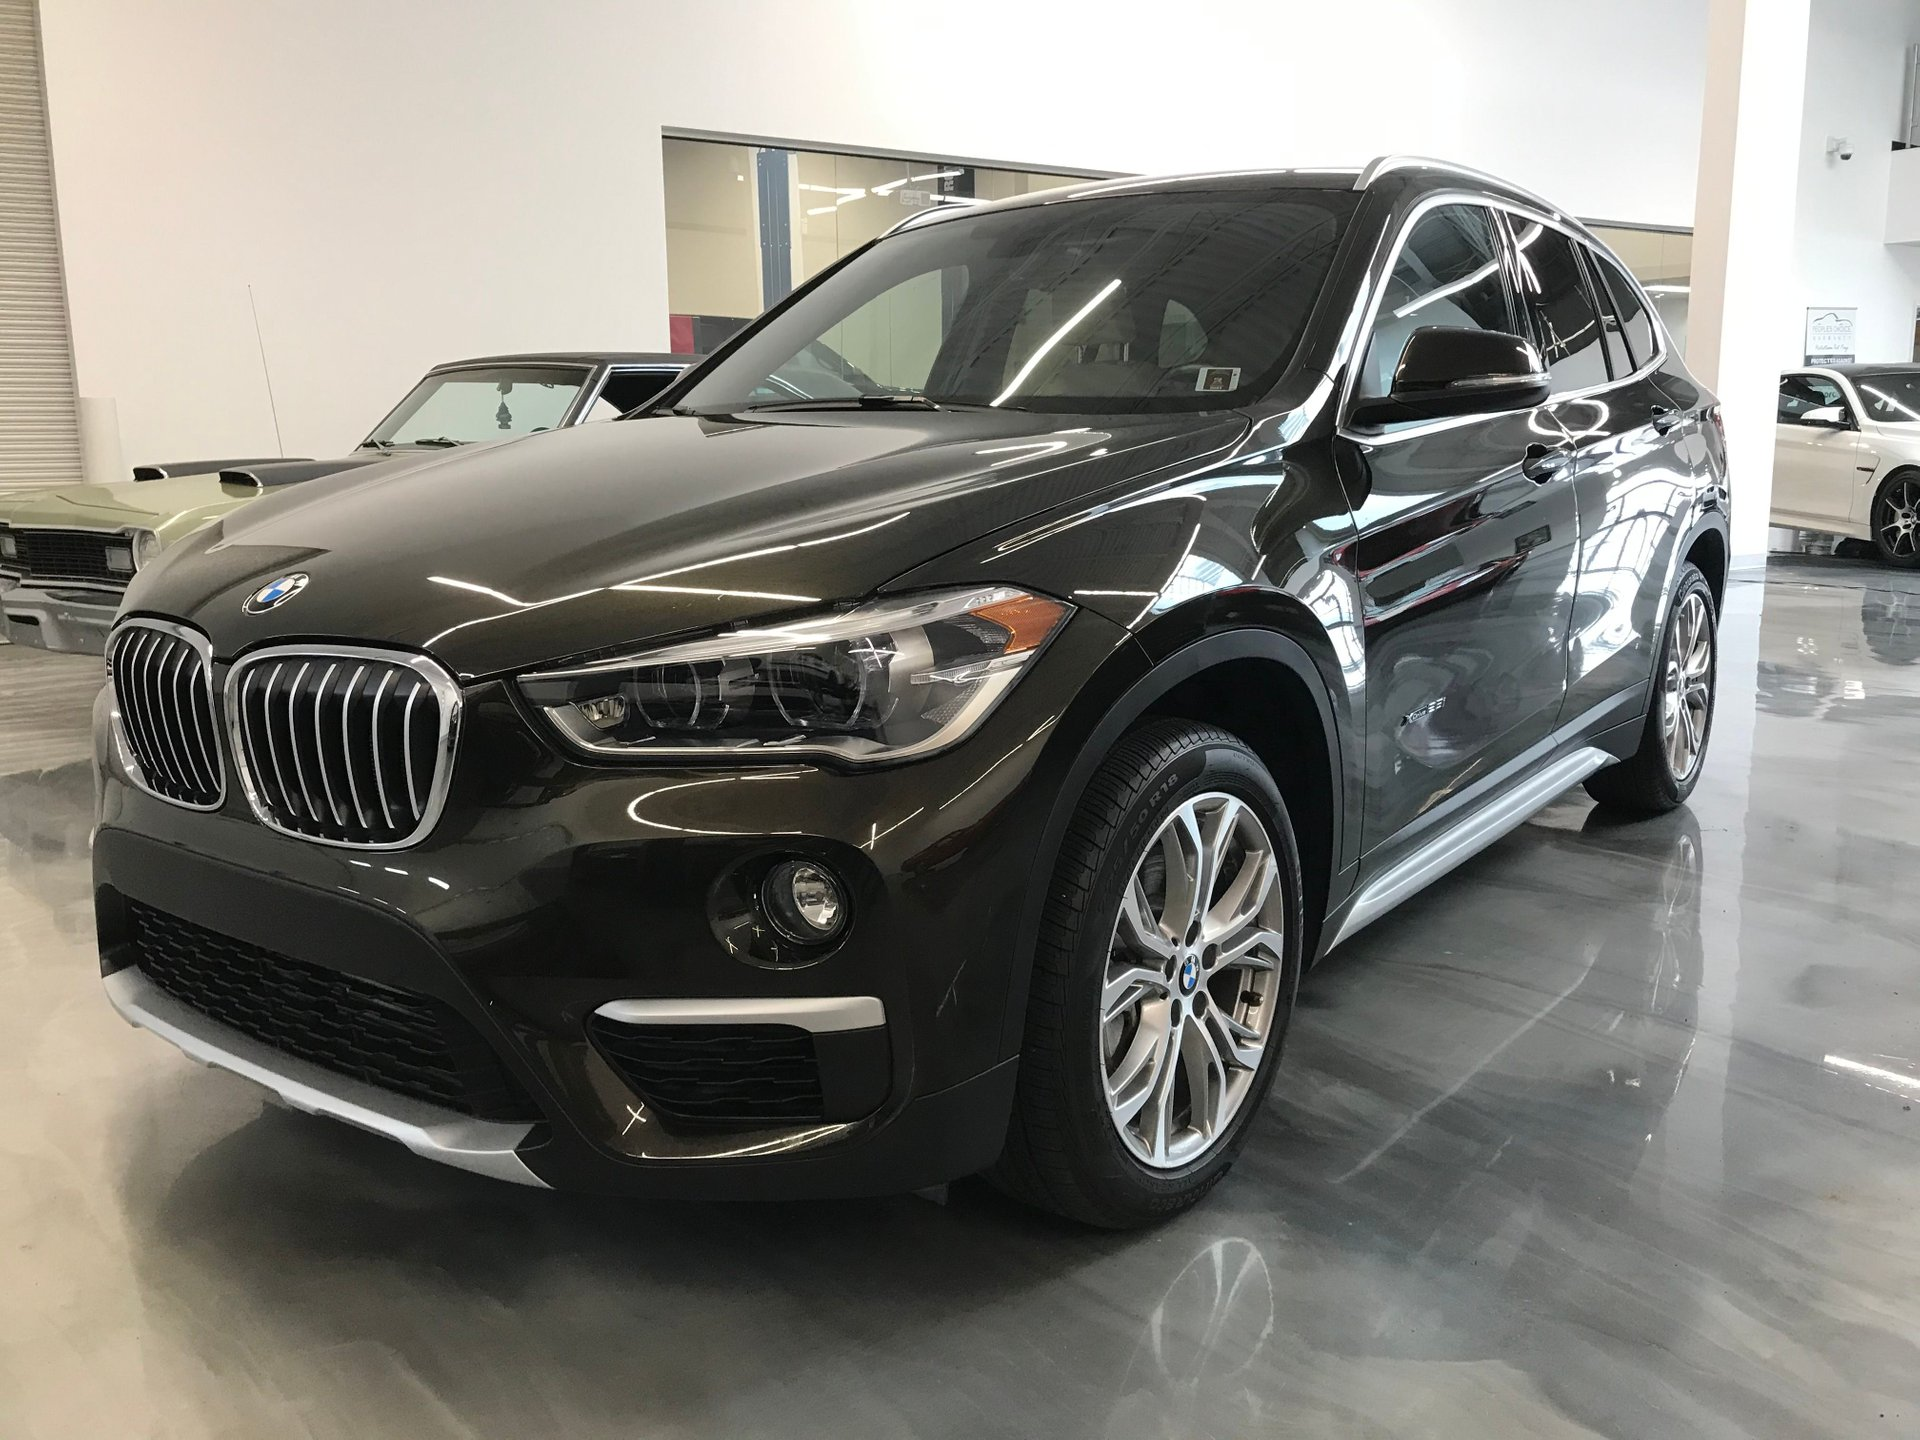 2018 bmw x1 sold sold thanks